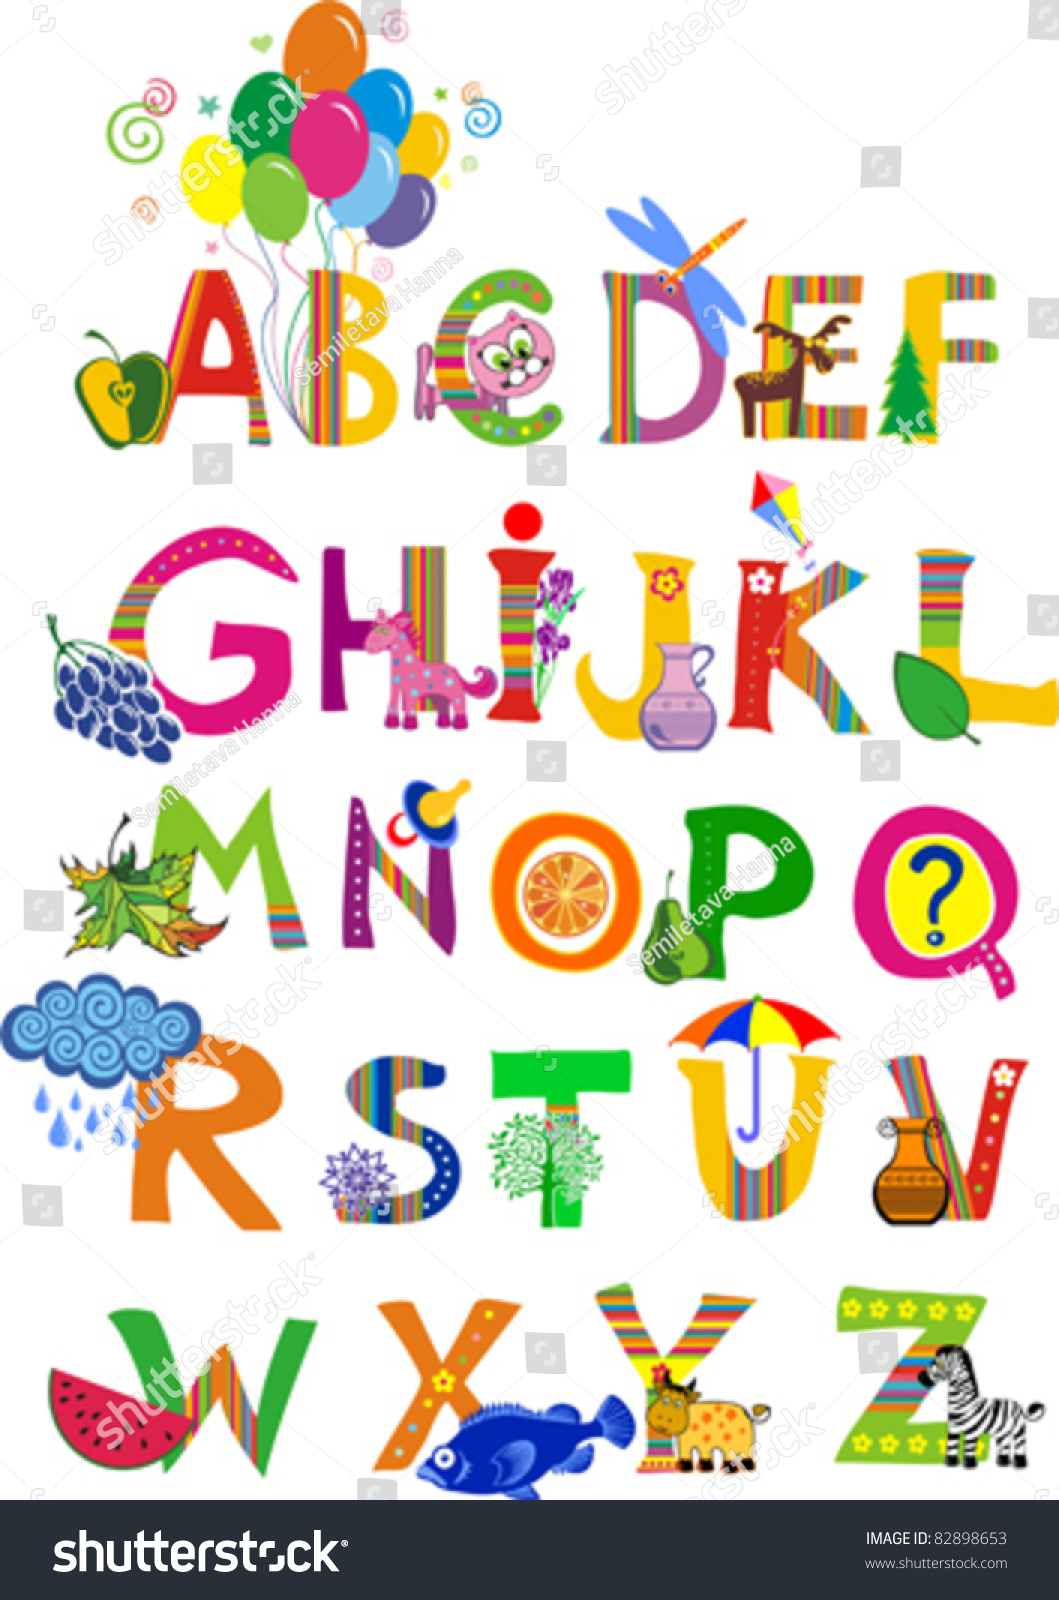 Complete Childrens English Alphabet Spelt Out Stock Vector